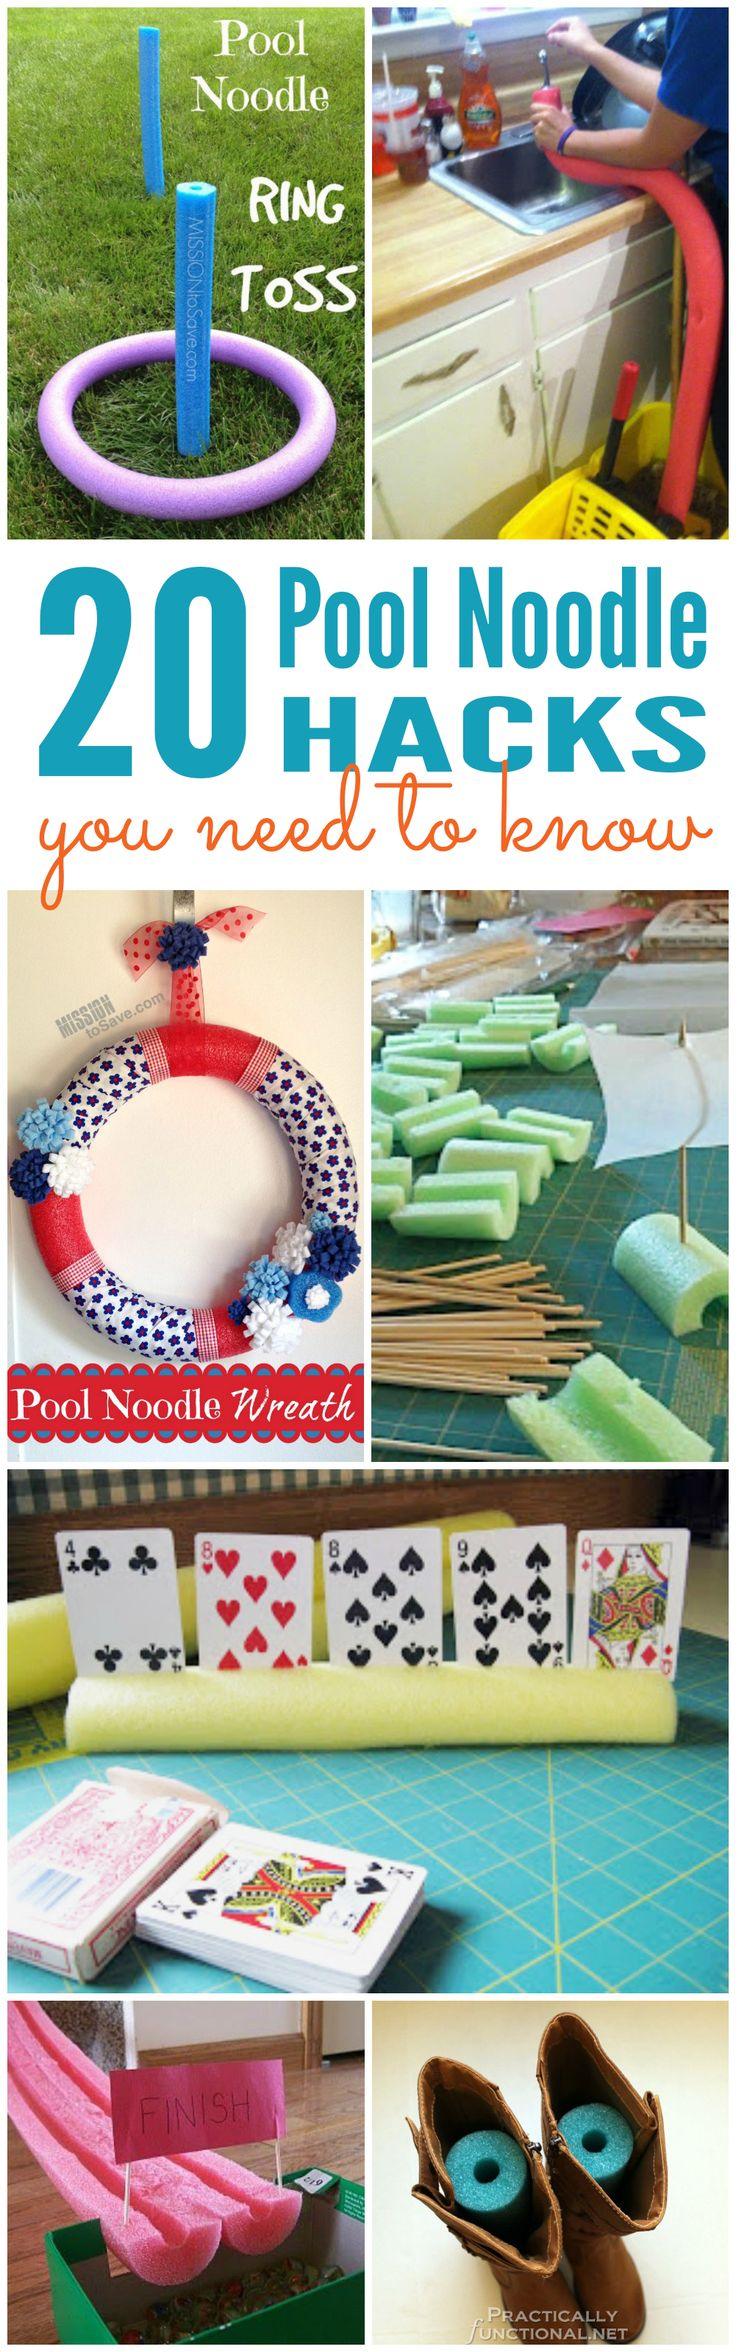 20 Pool Noodle Hacks! FUN Summertime tips and tricks!